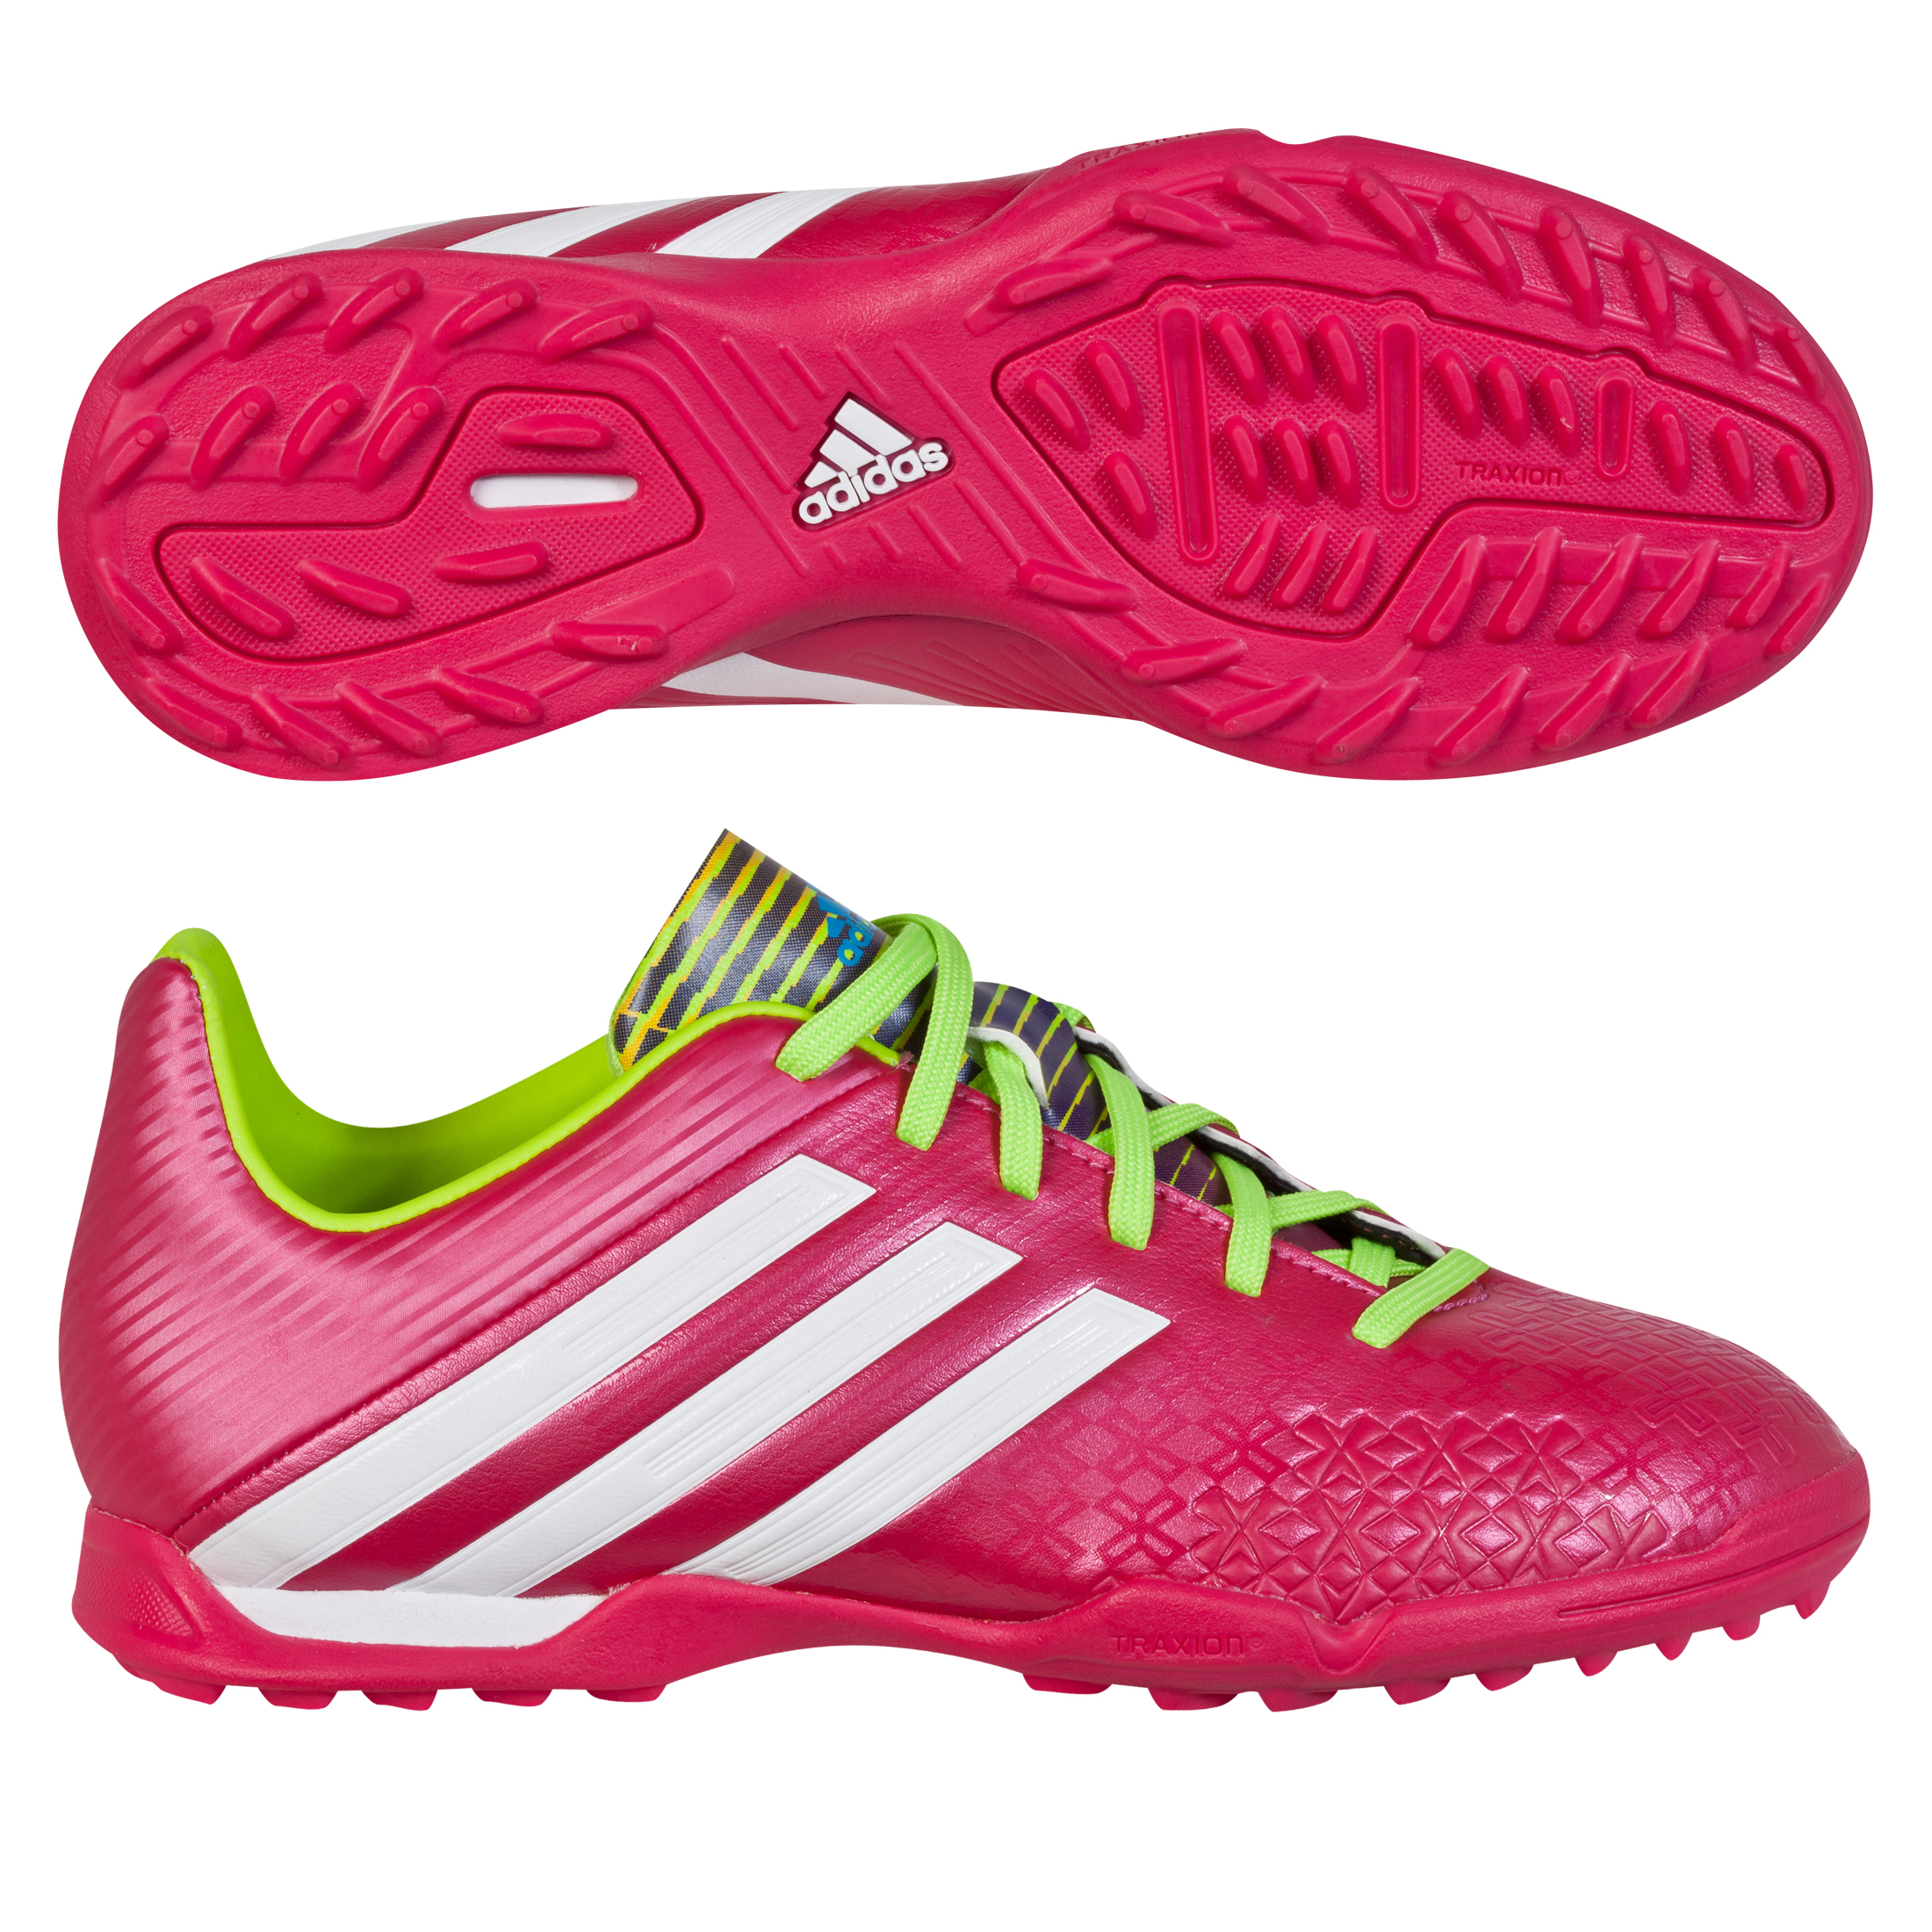 Adidas Predator Absolado LZ TRX Astroturf Trainers - Kids Purple